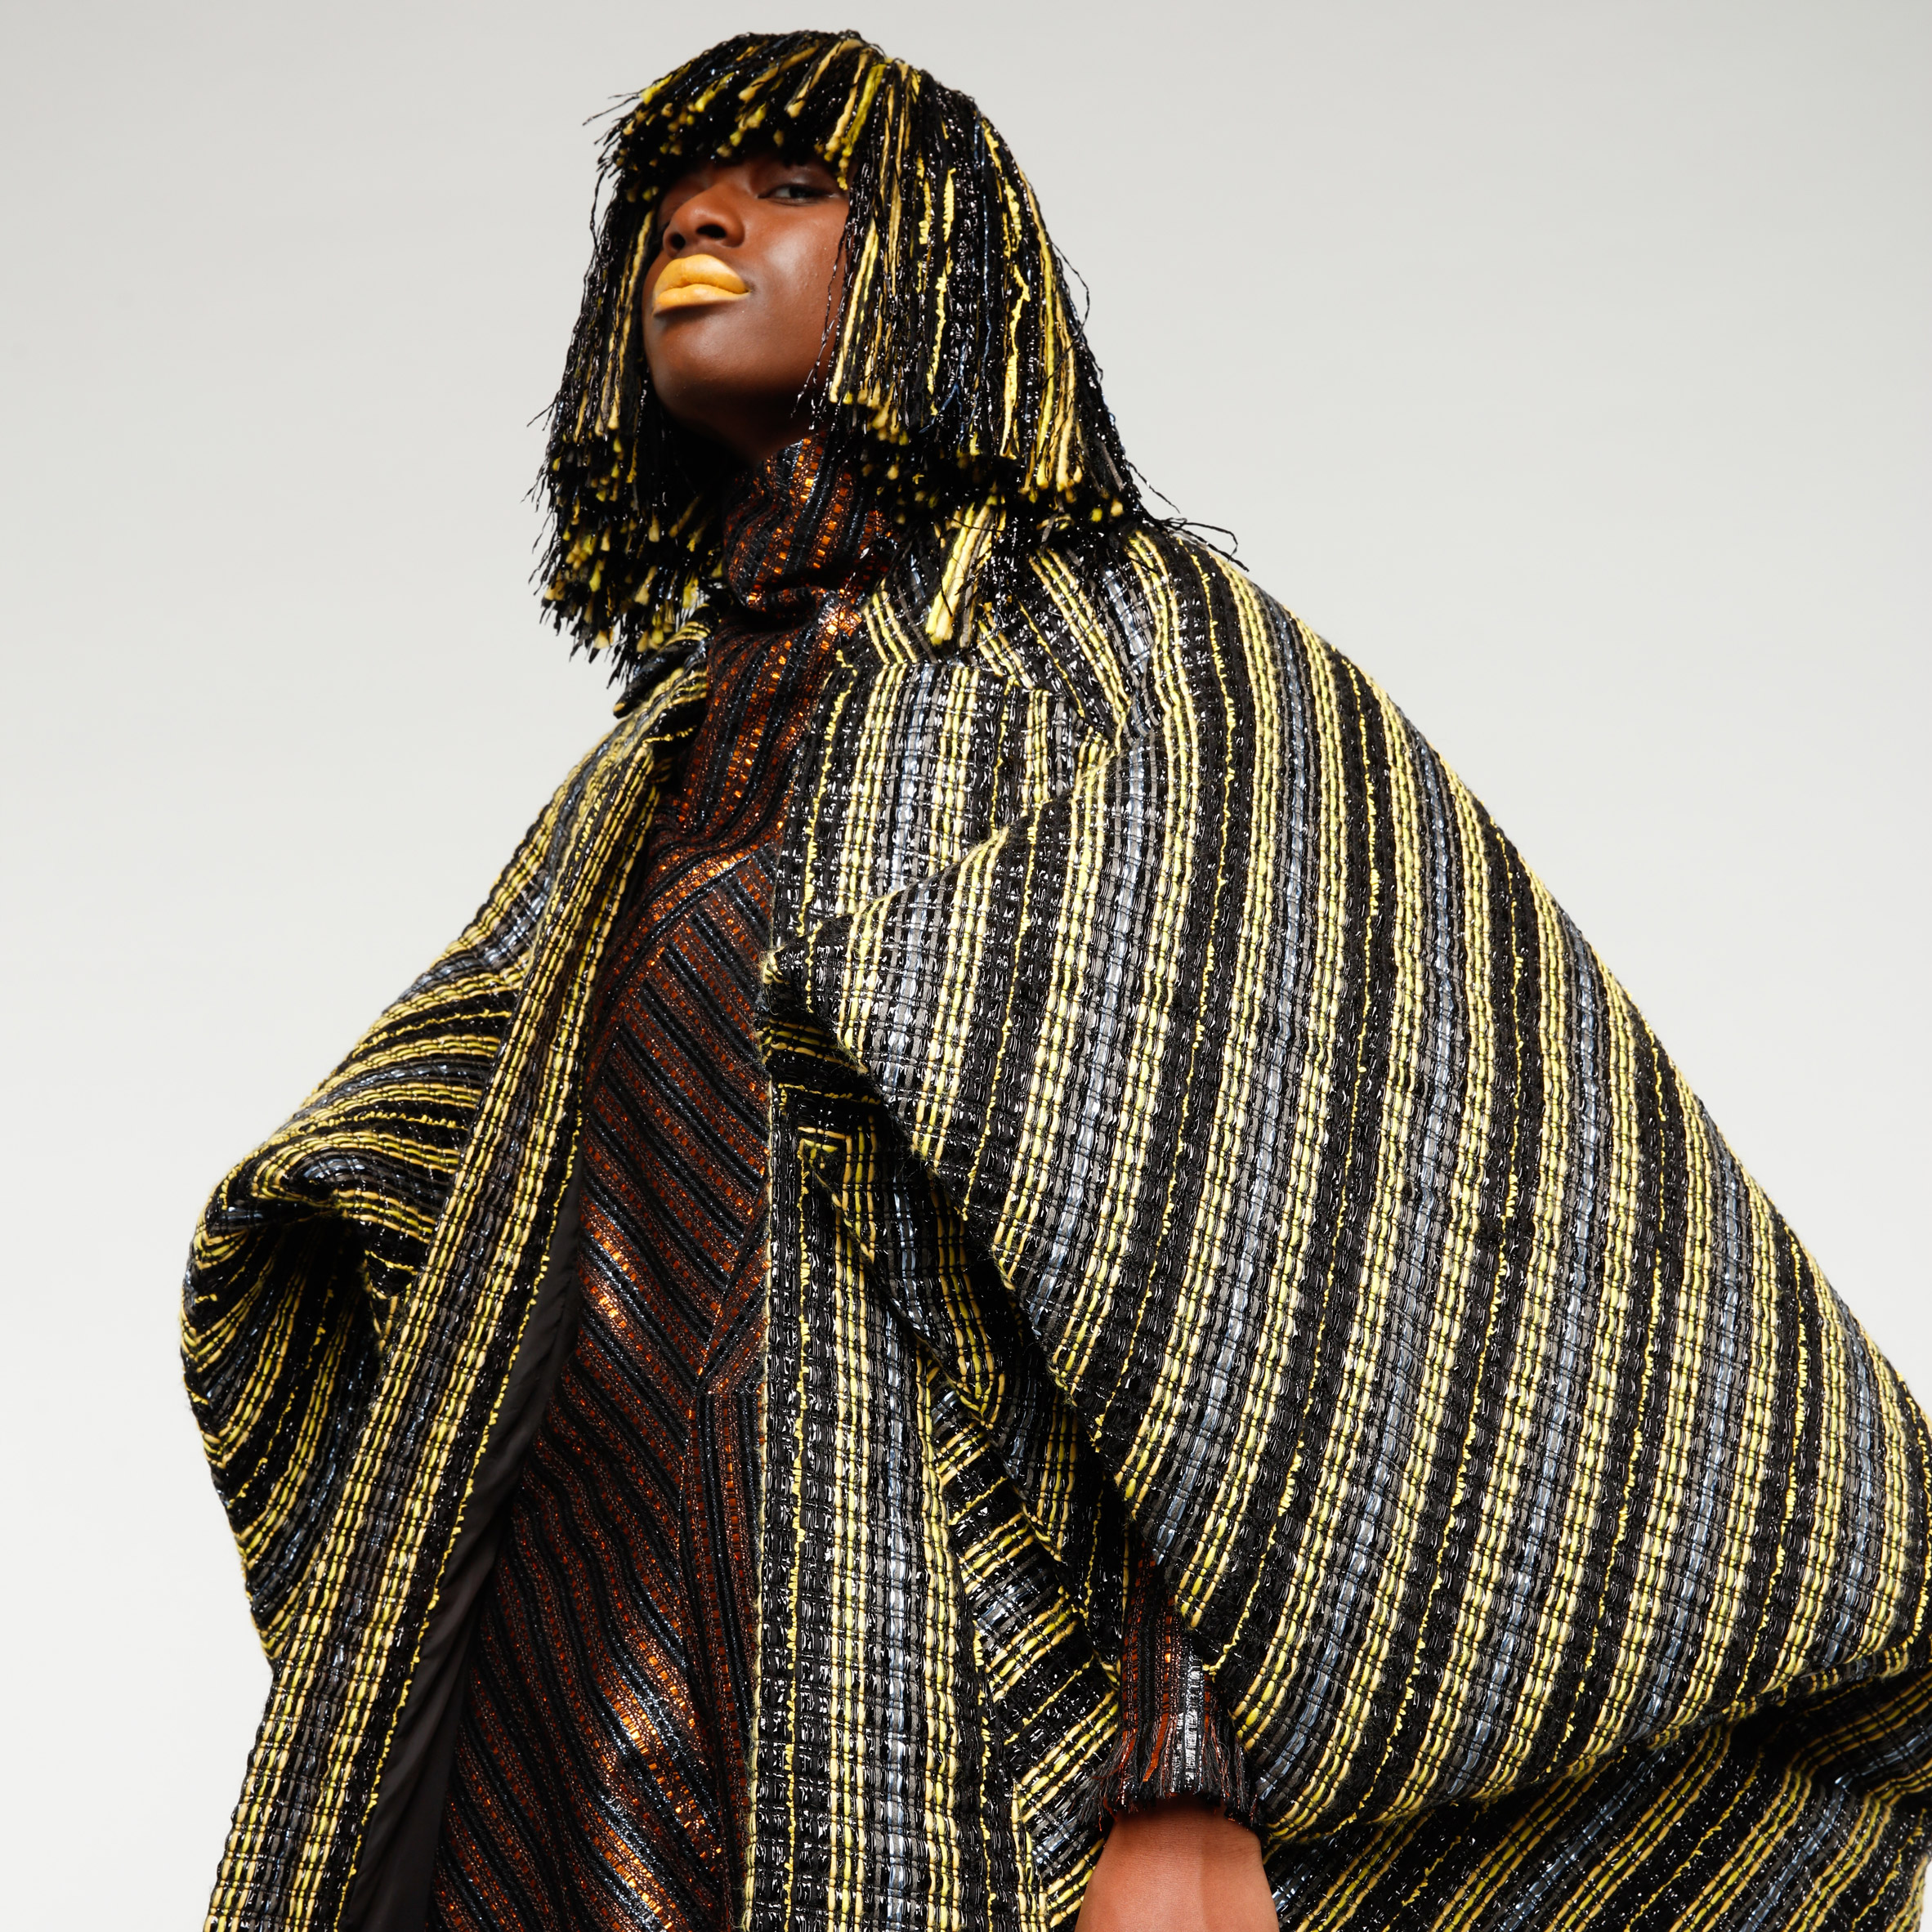 Benjamin Benmoyal Makes Garments From Recycled Cassette Tapes